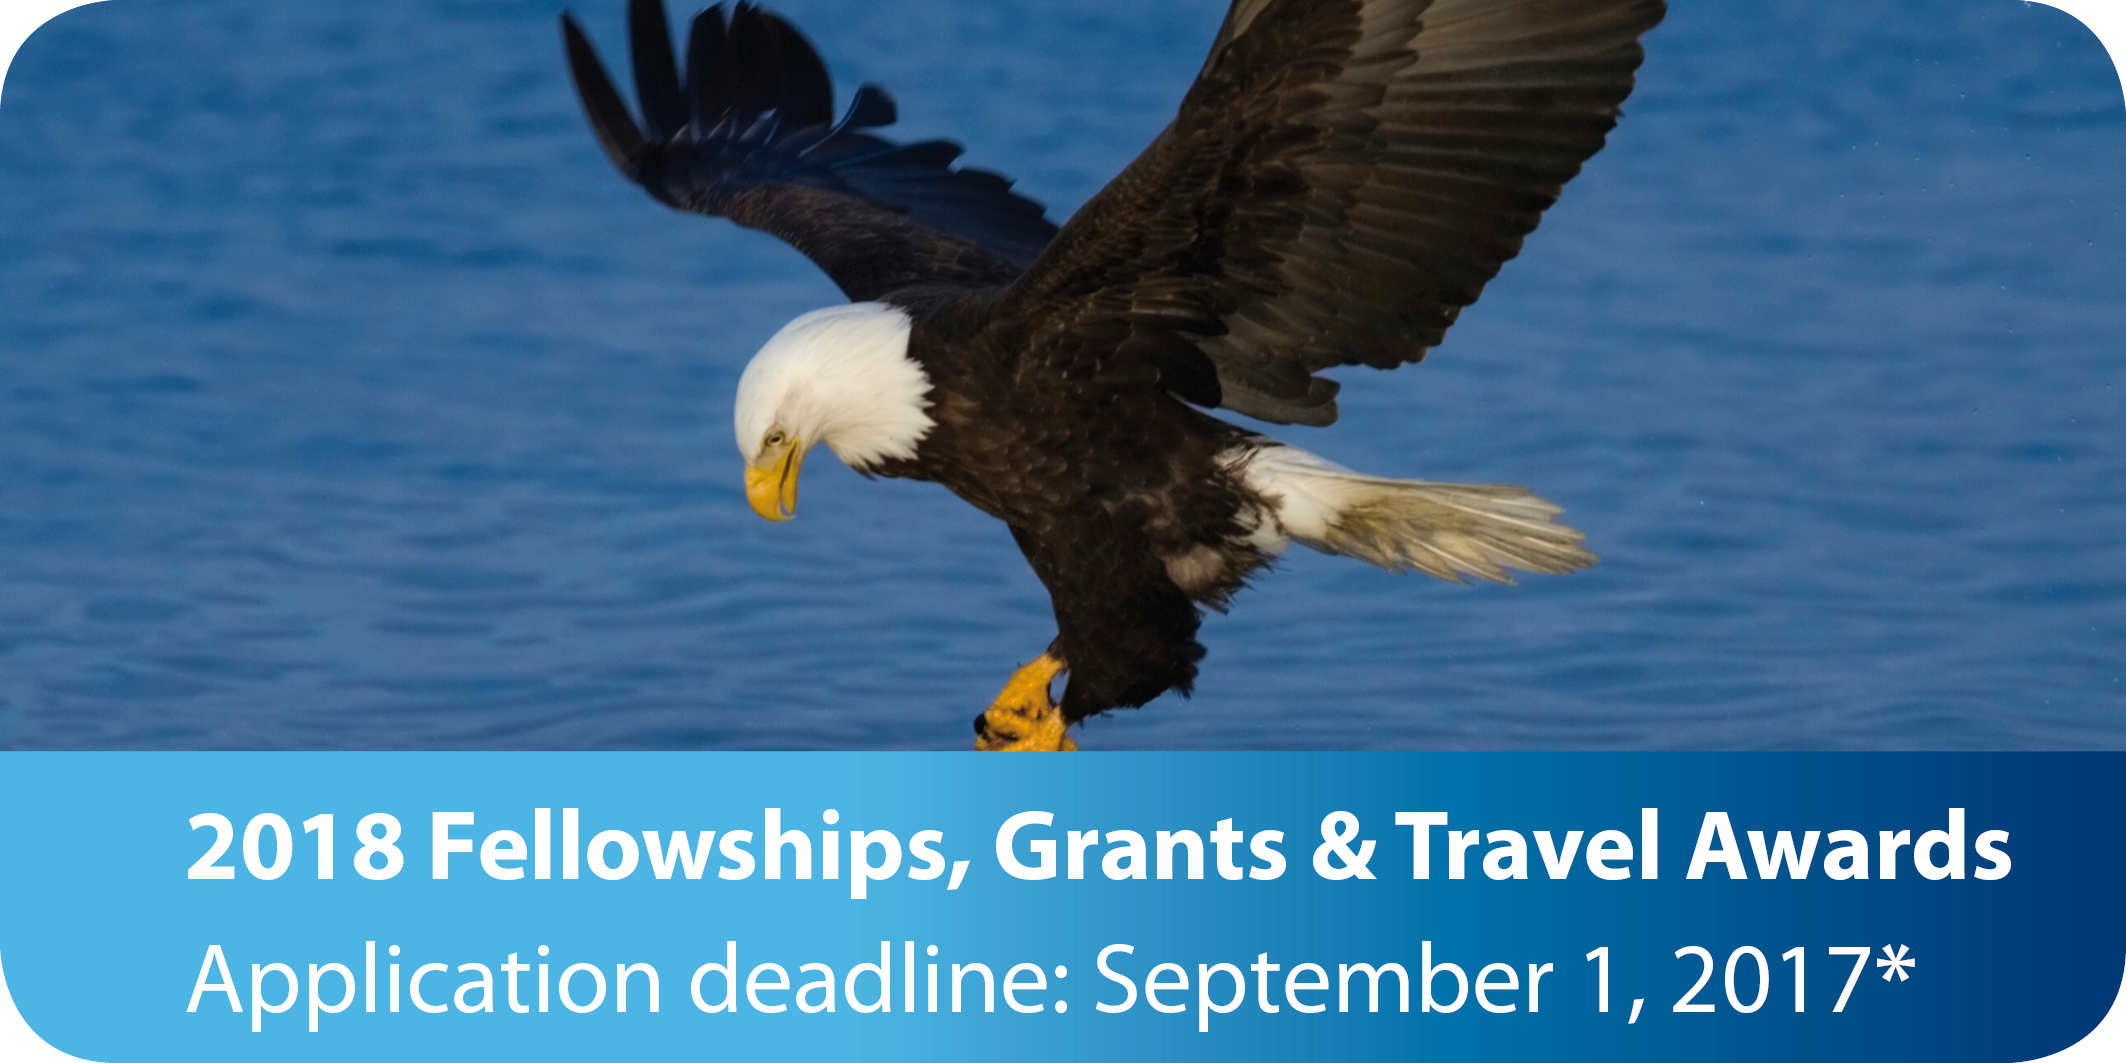 Fellowships, grants and travel awards